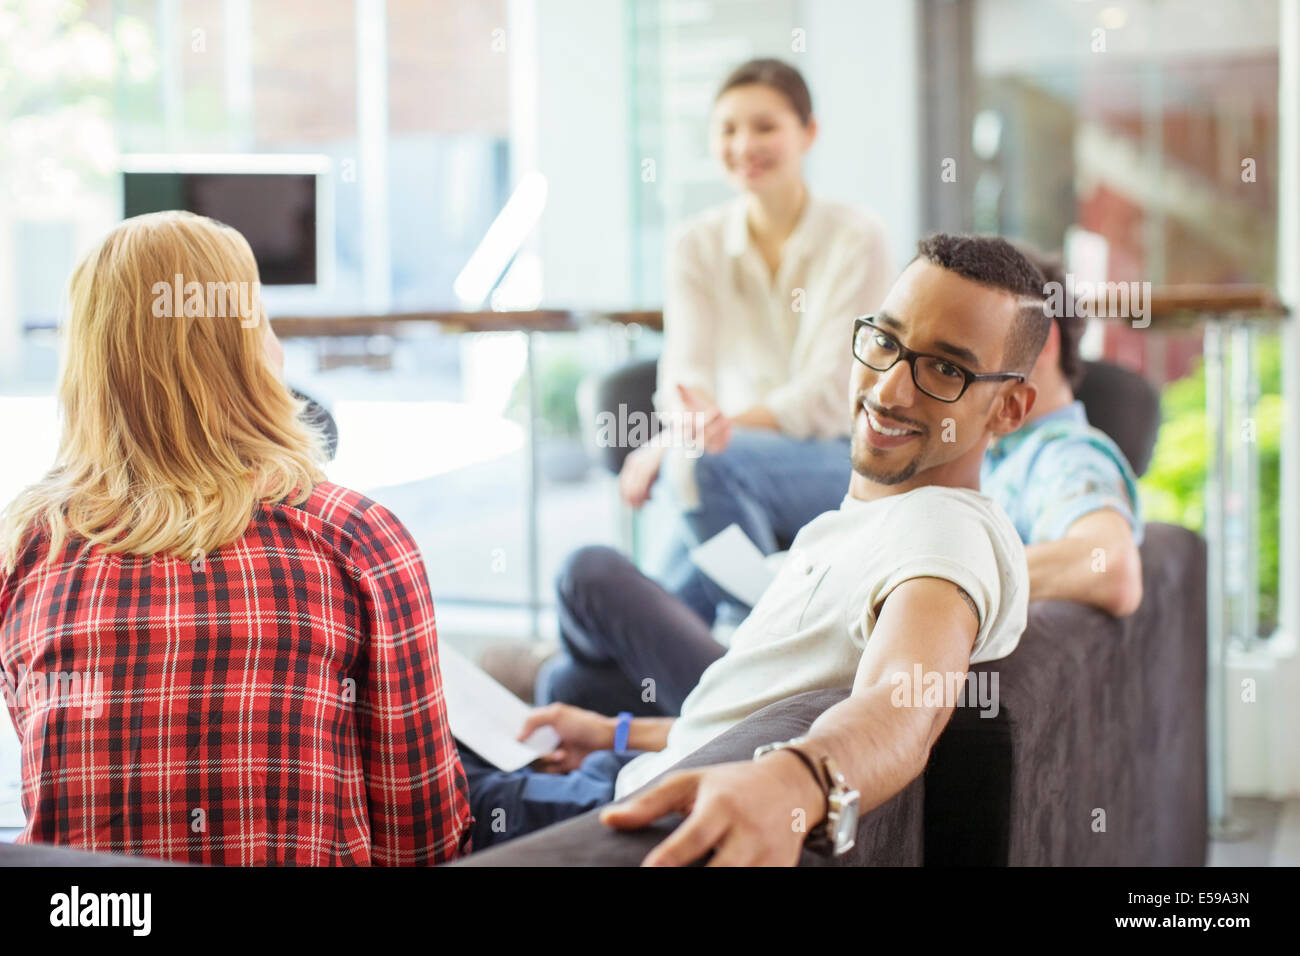 People smiling in office lobby area - Stock Image